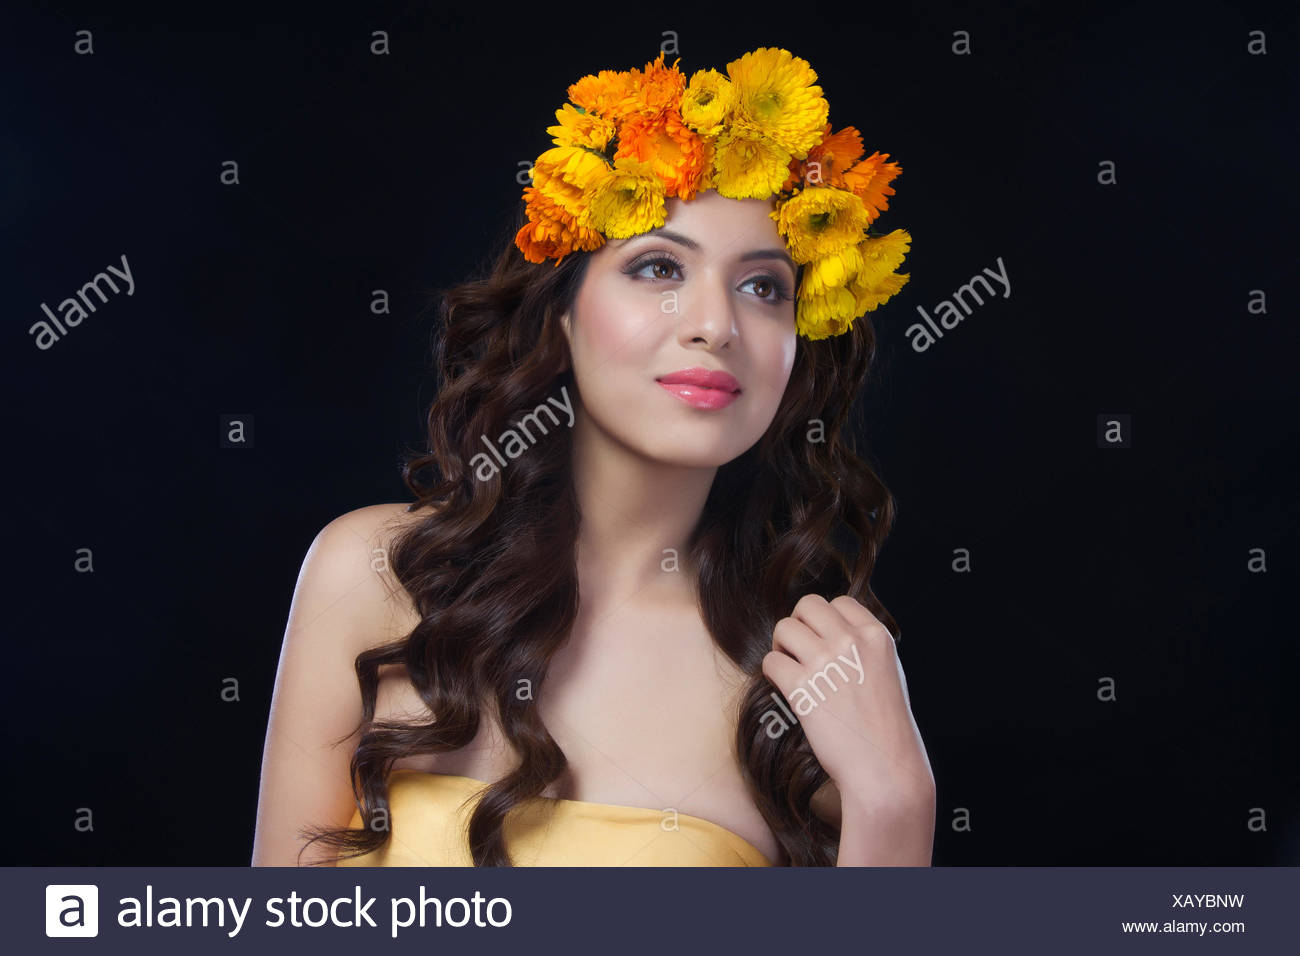 Portrait of a beautiful woman with flowers in her hair stock photo portrait of a beautiful woman with flowers in her hair izmirmasajfo Image collections